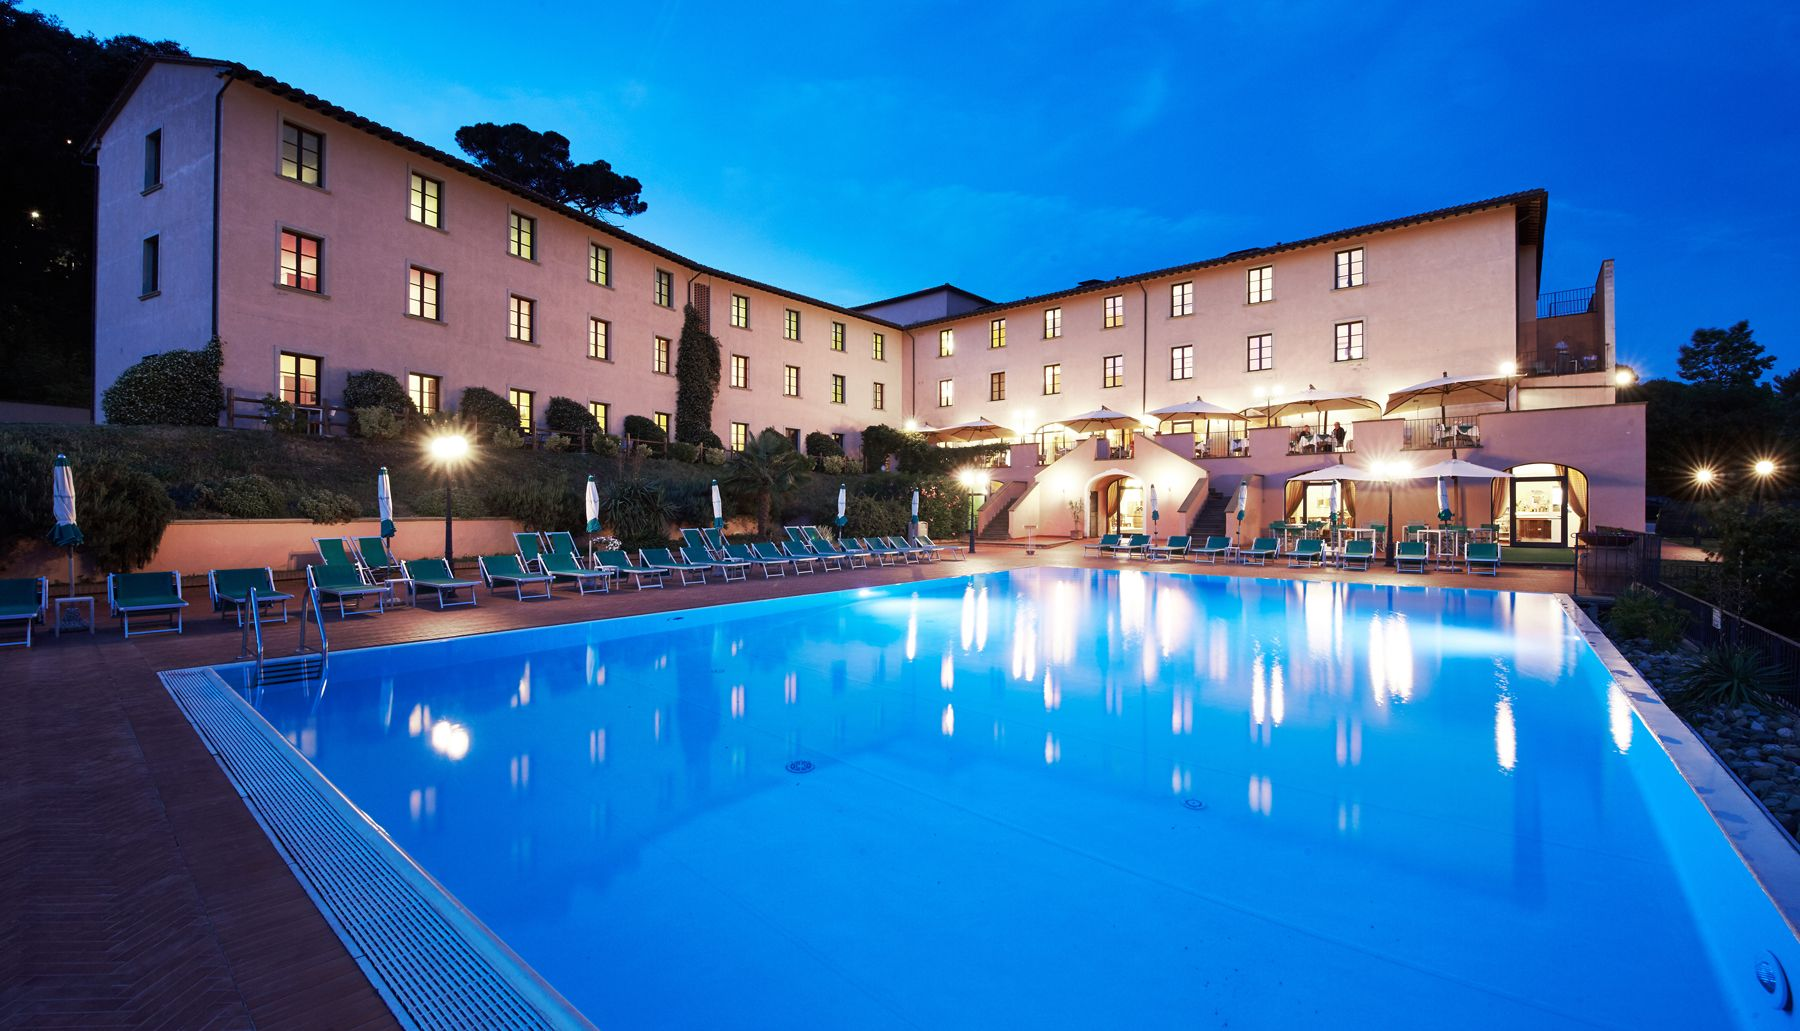 Hotel a volterra park hotel le fonti 4 stelle con for Appart hotel park and suites